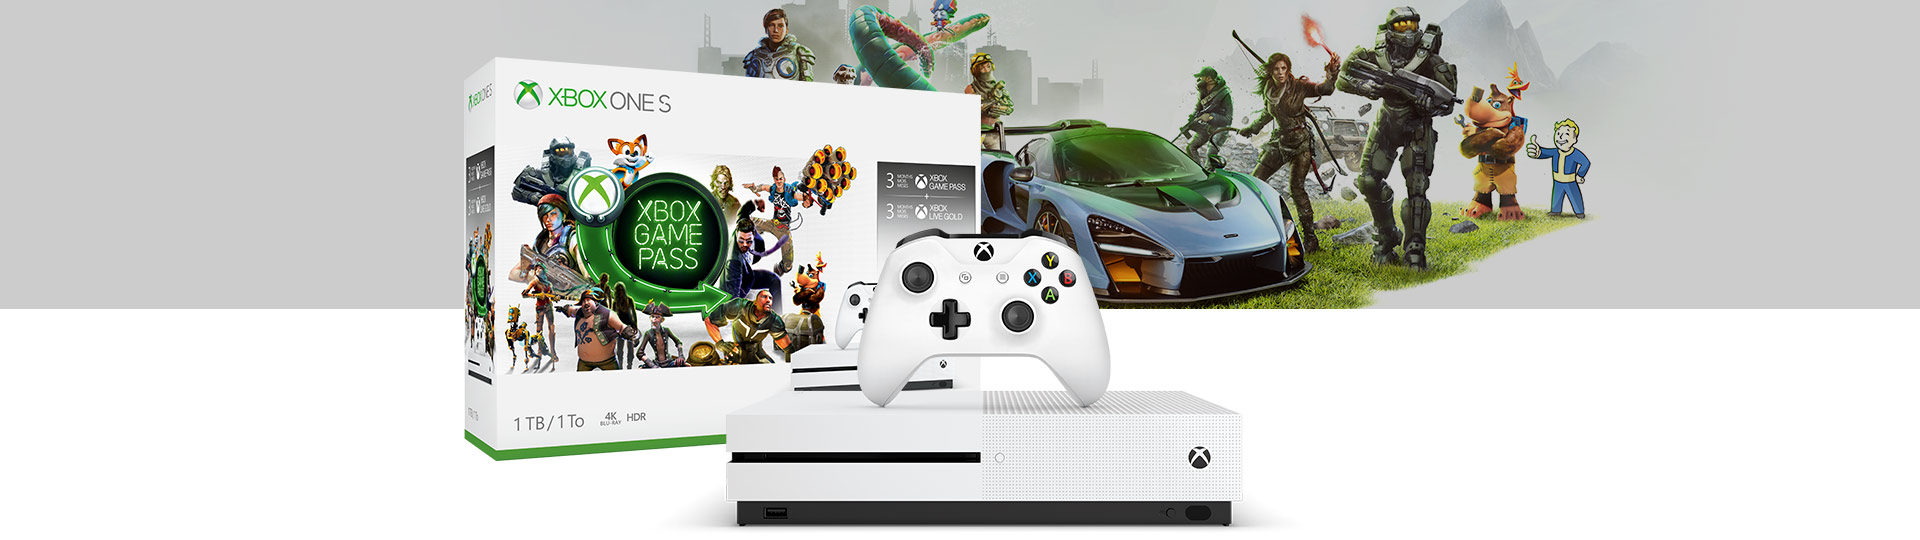 Pack de démarrage Xbox One S (1 To)